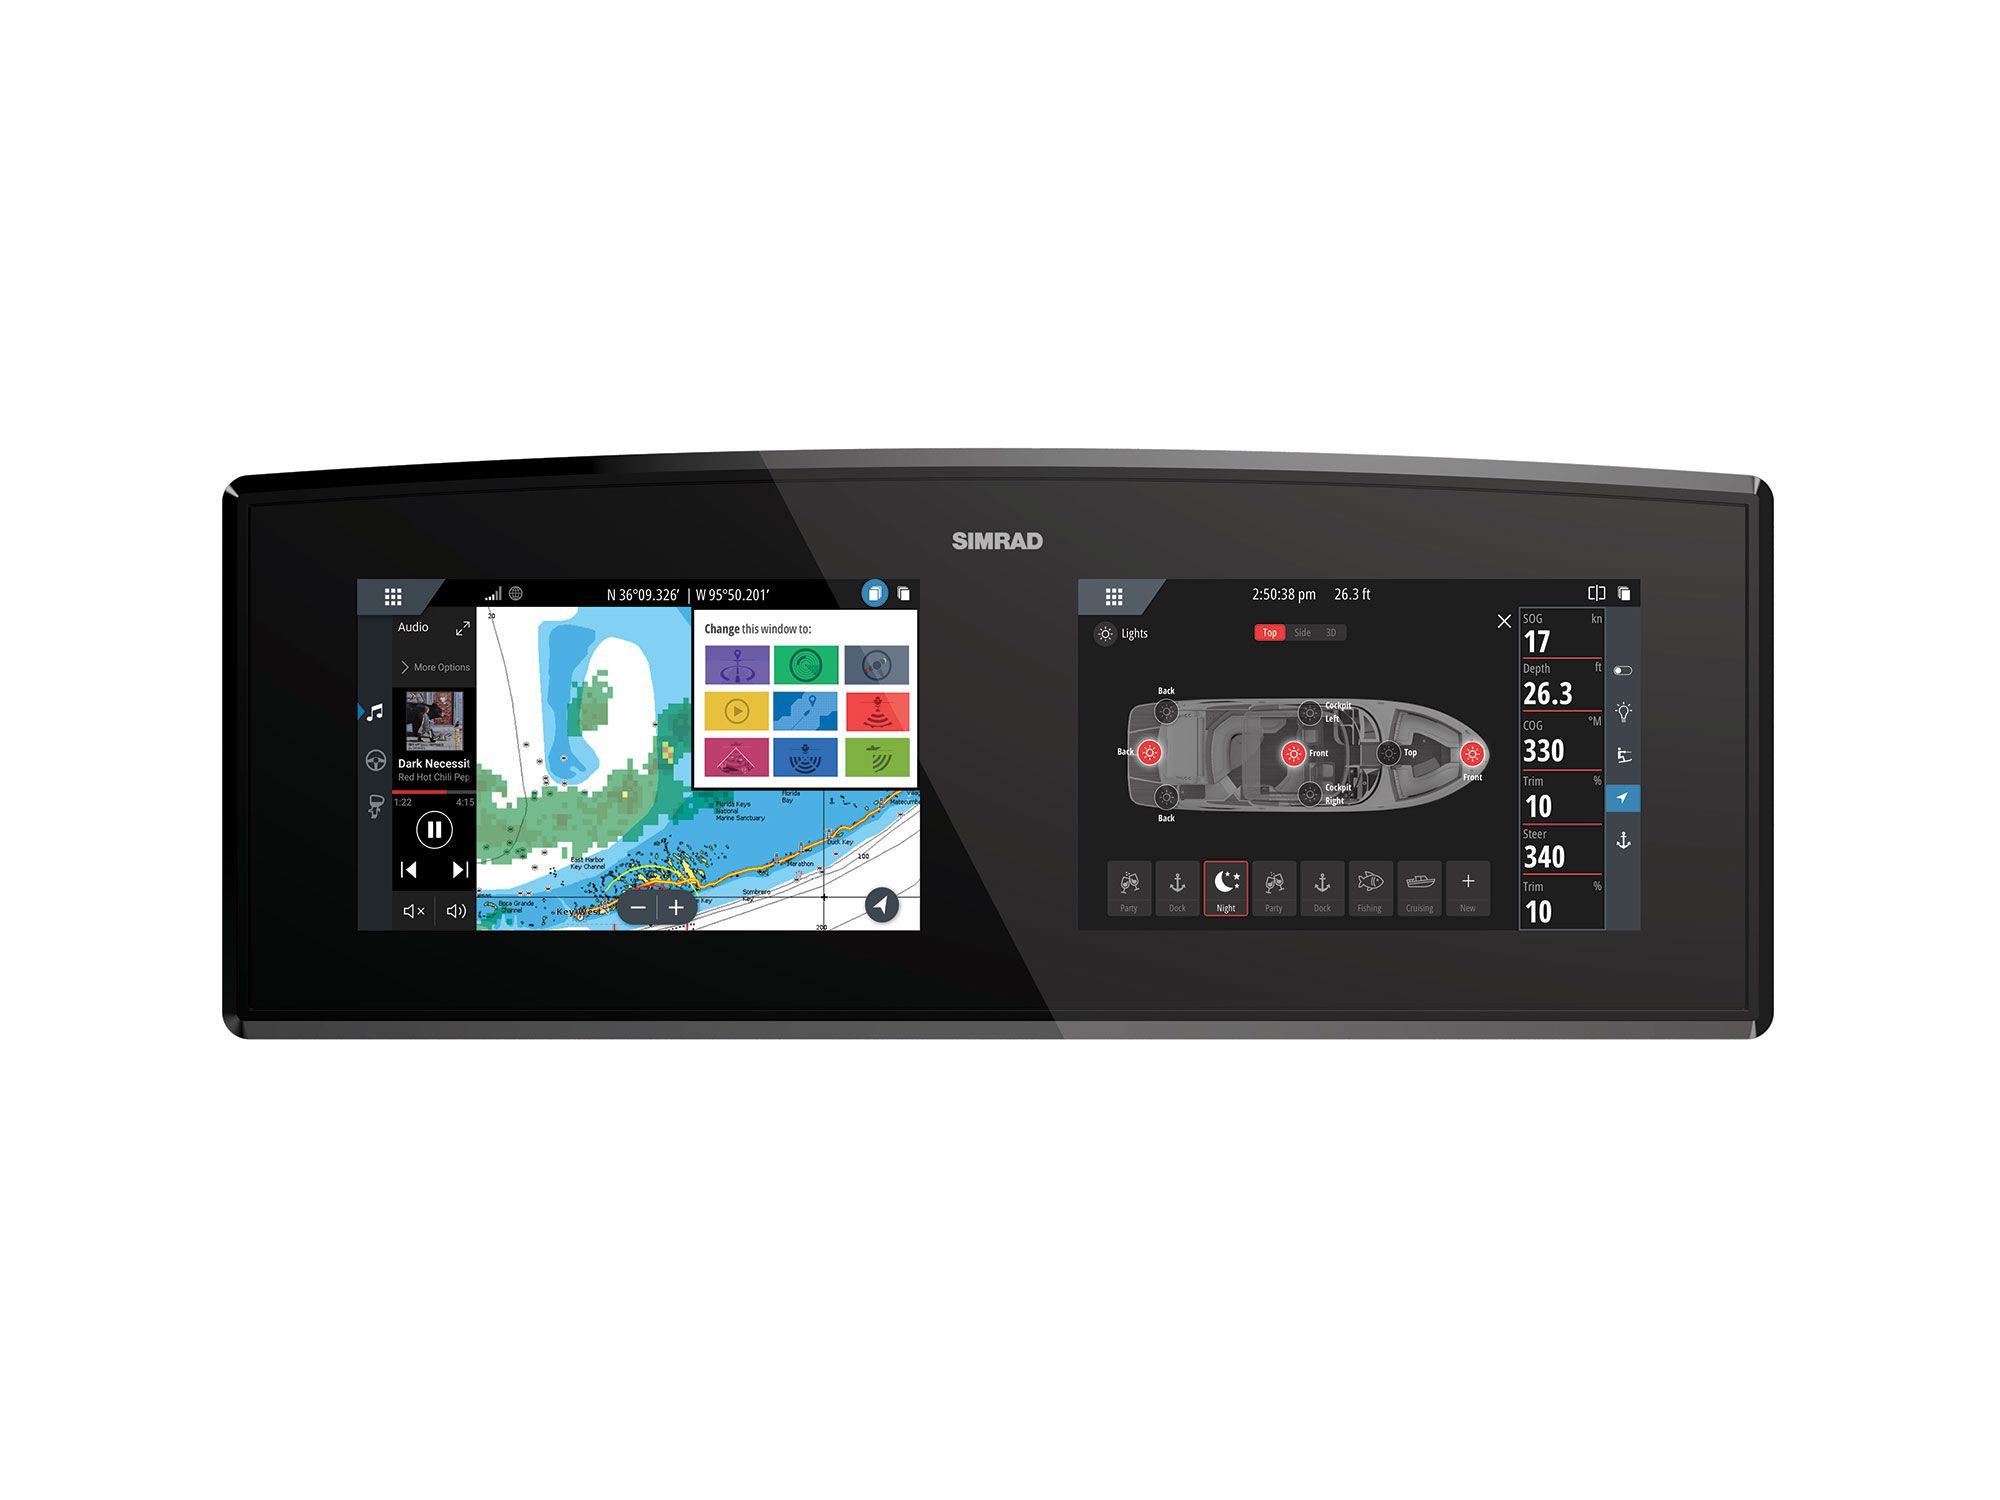 Navico's Information Display system gives boatbuilders a new way of integrating, monitoring and controlling instrumentation, switching and onboard systems.